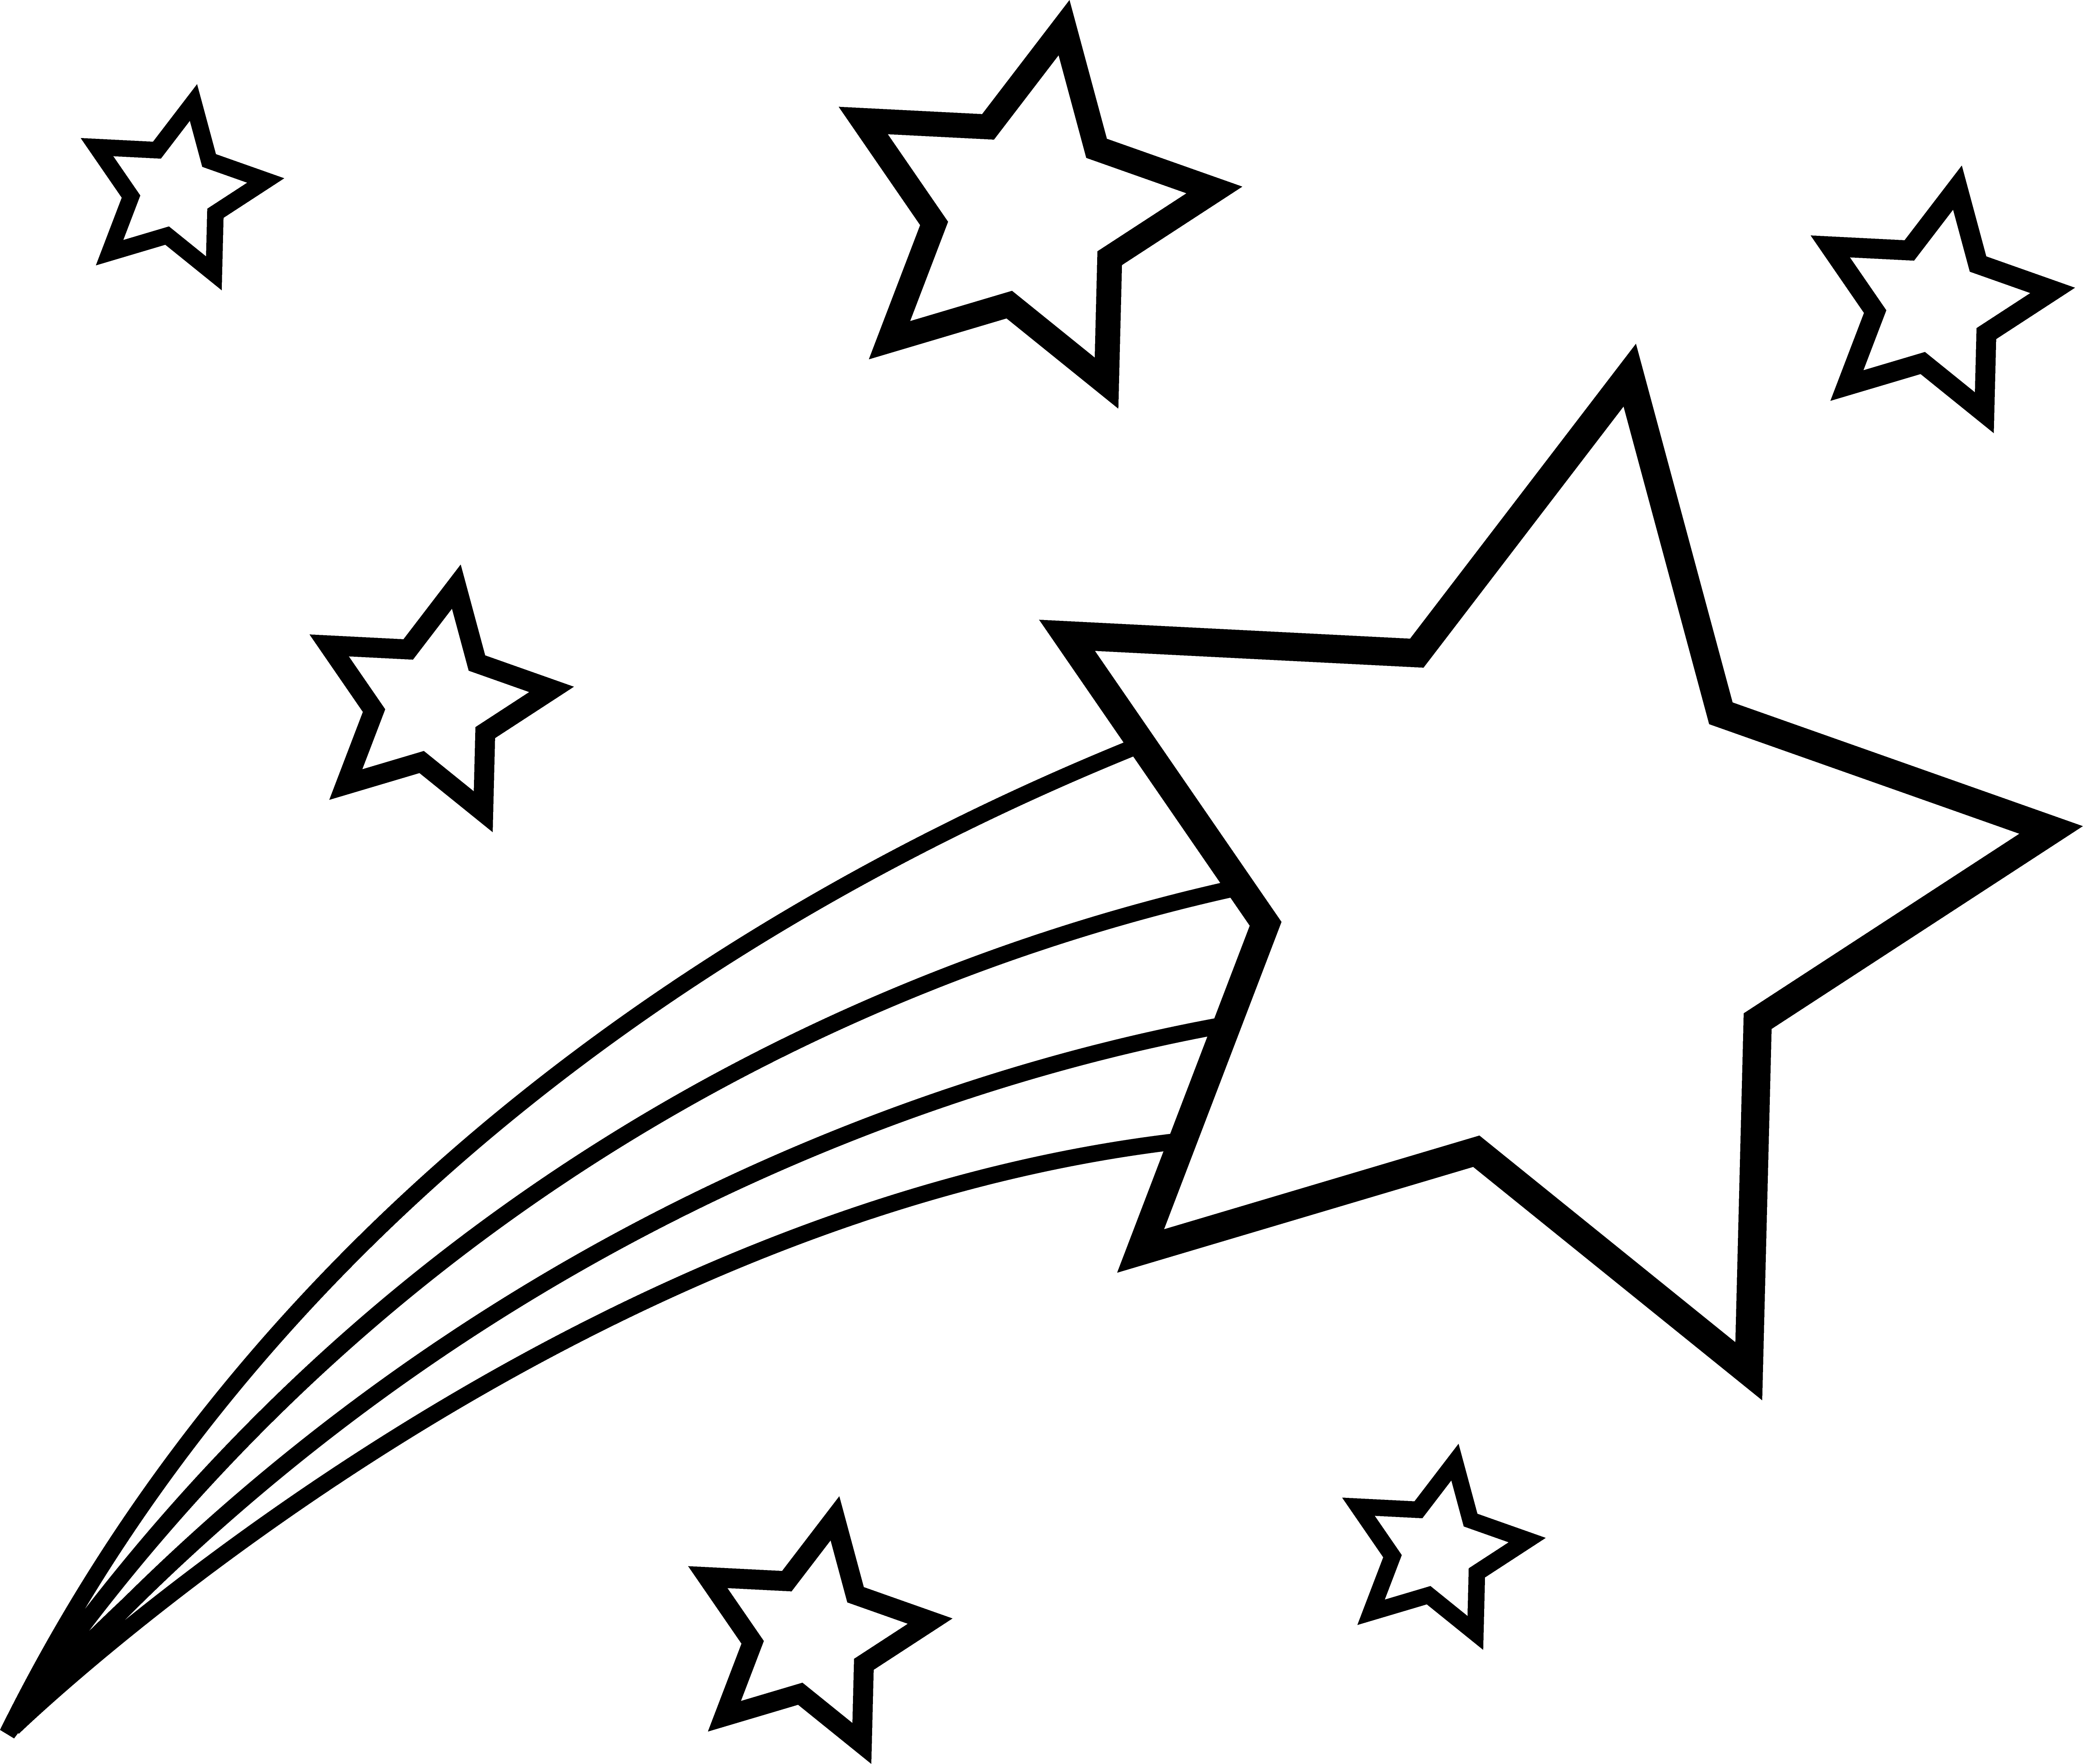 star icon clipart shooting